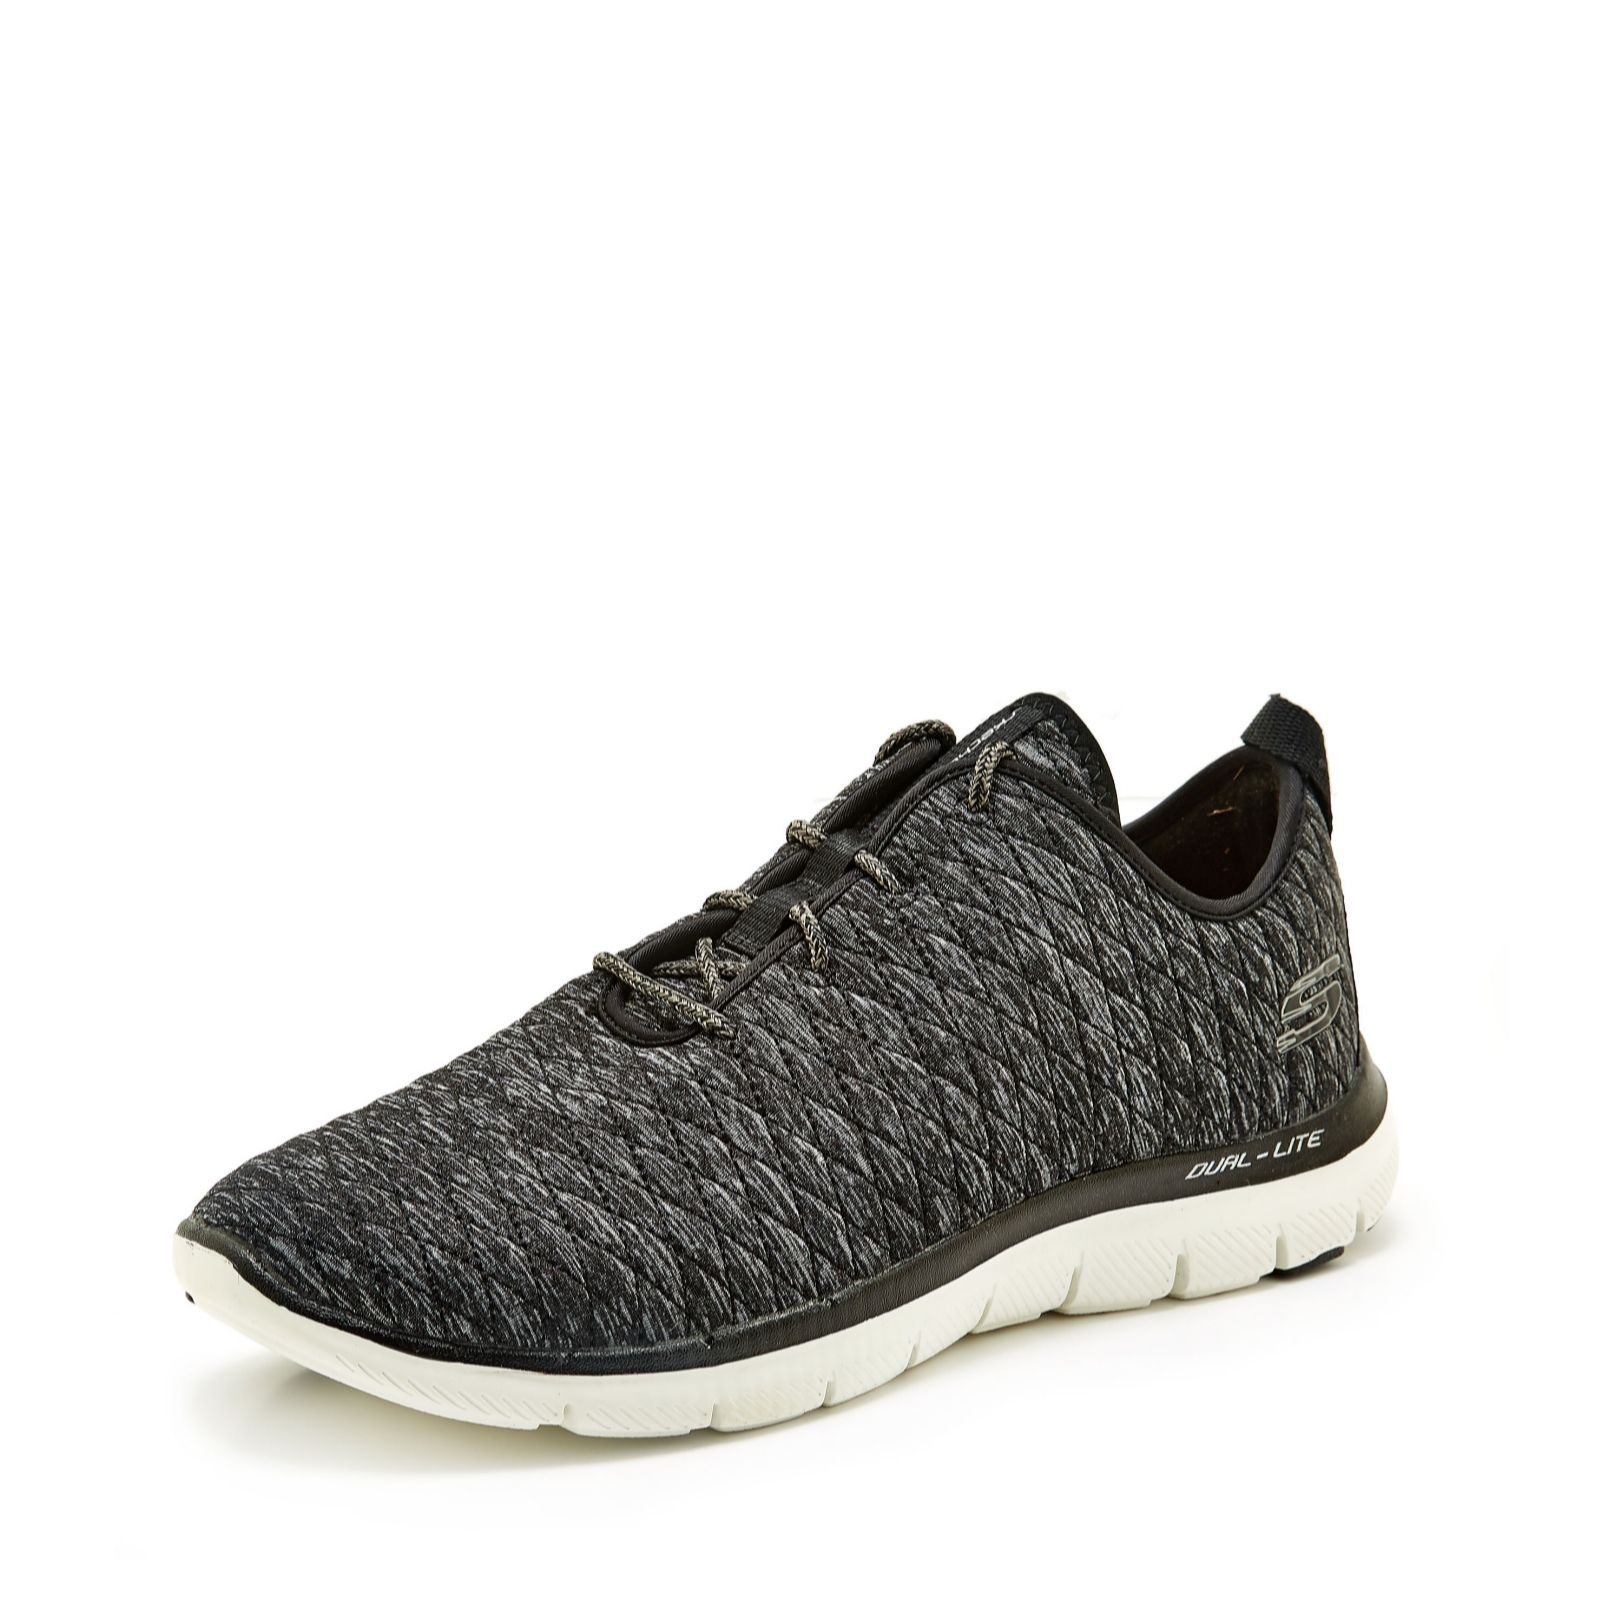 841fd4c656603 Skechers Flex Appeal 2.0 First Impression Heathered Mesh Lace Up ...